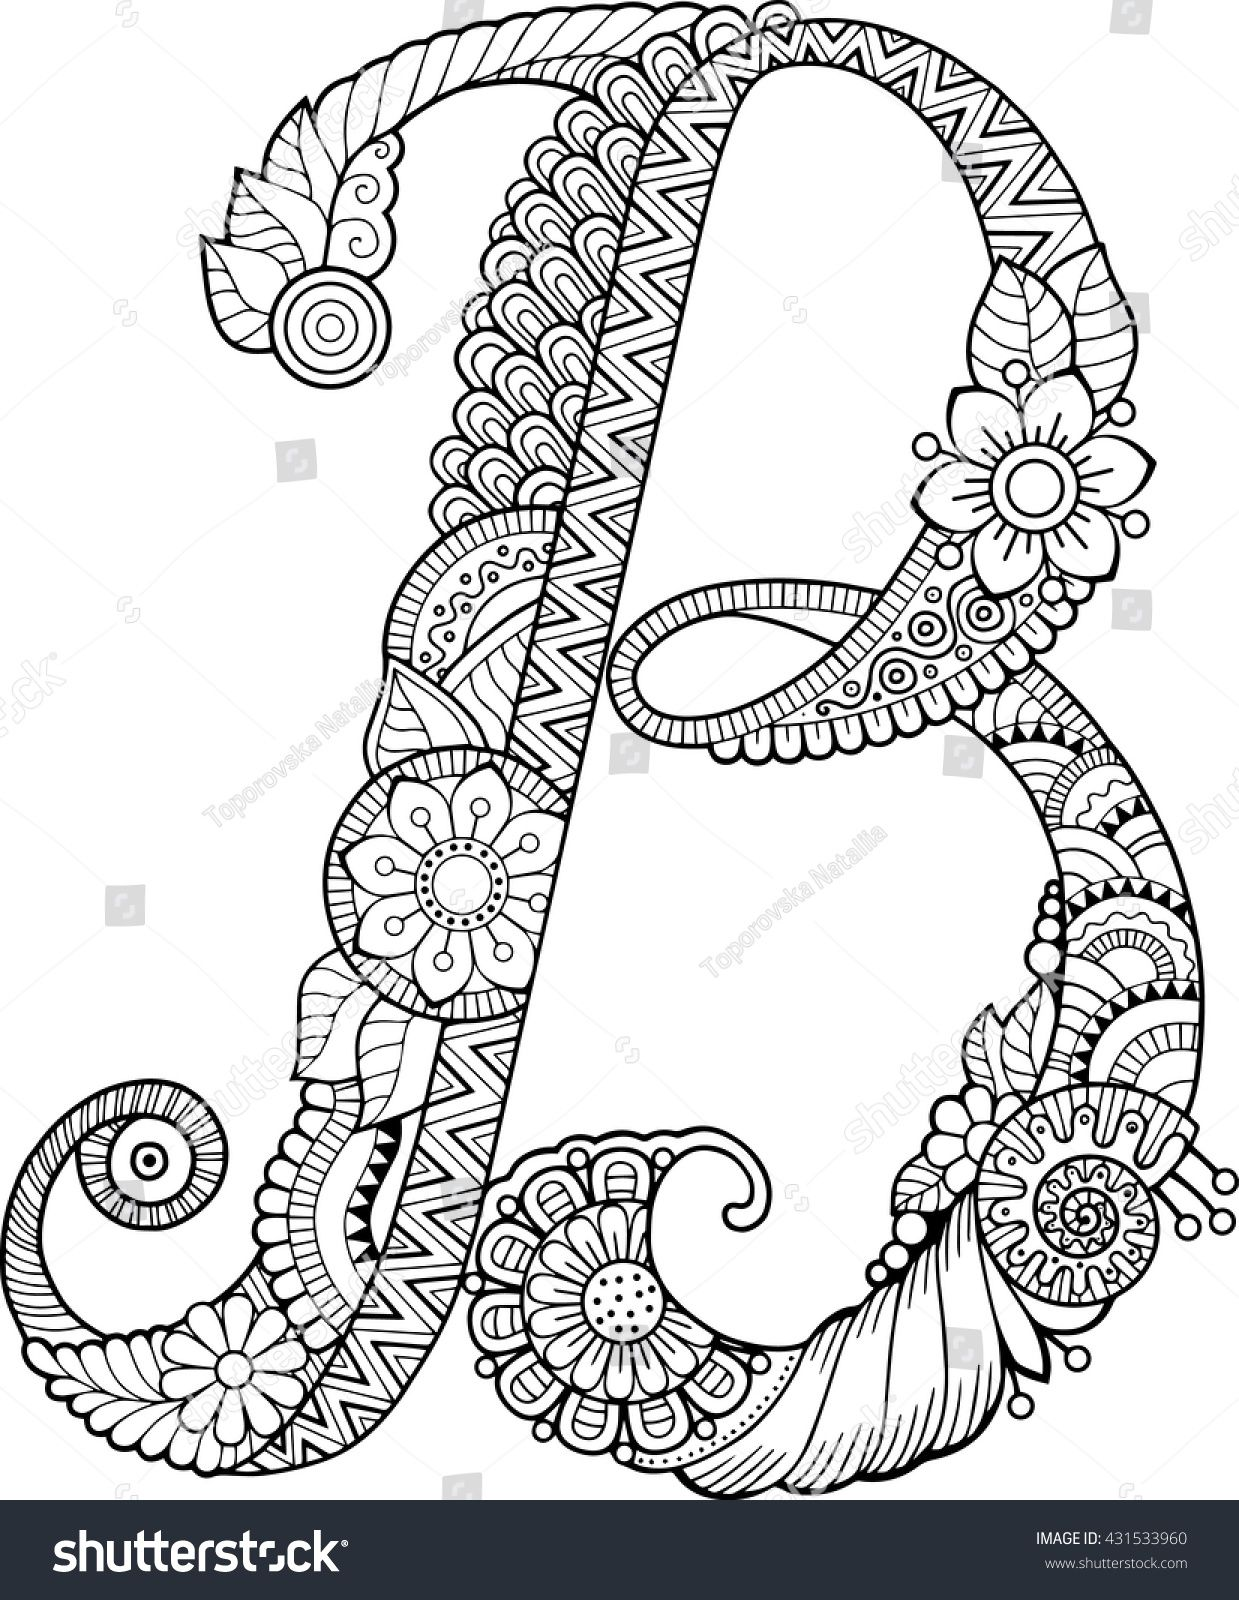 Coloring Book For Adults Floral Doodle Letter B Hand Drawn Flowers Alphabet Flower Coloring Pages Hand Drawn Flowers Flower Alphabet